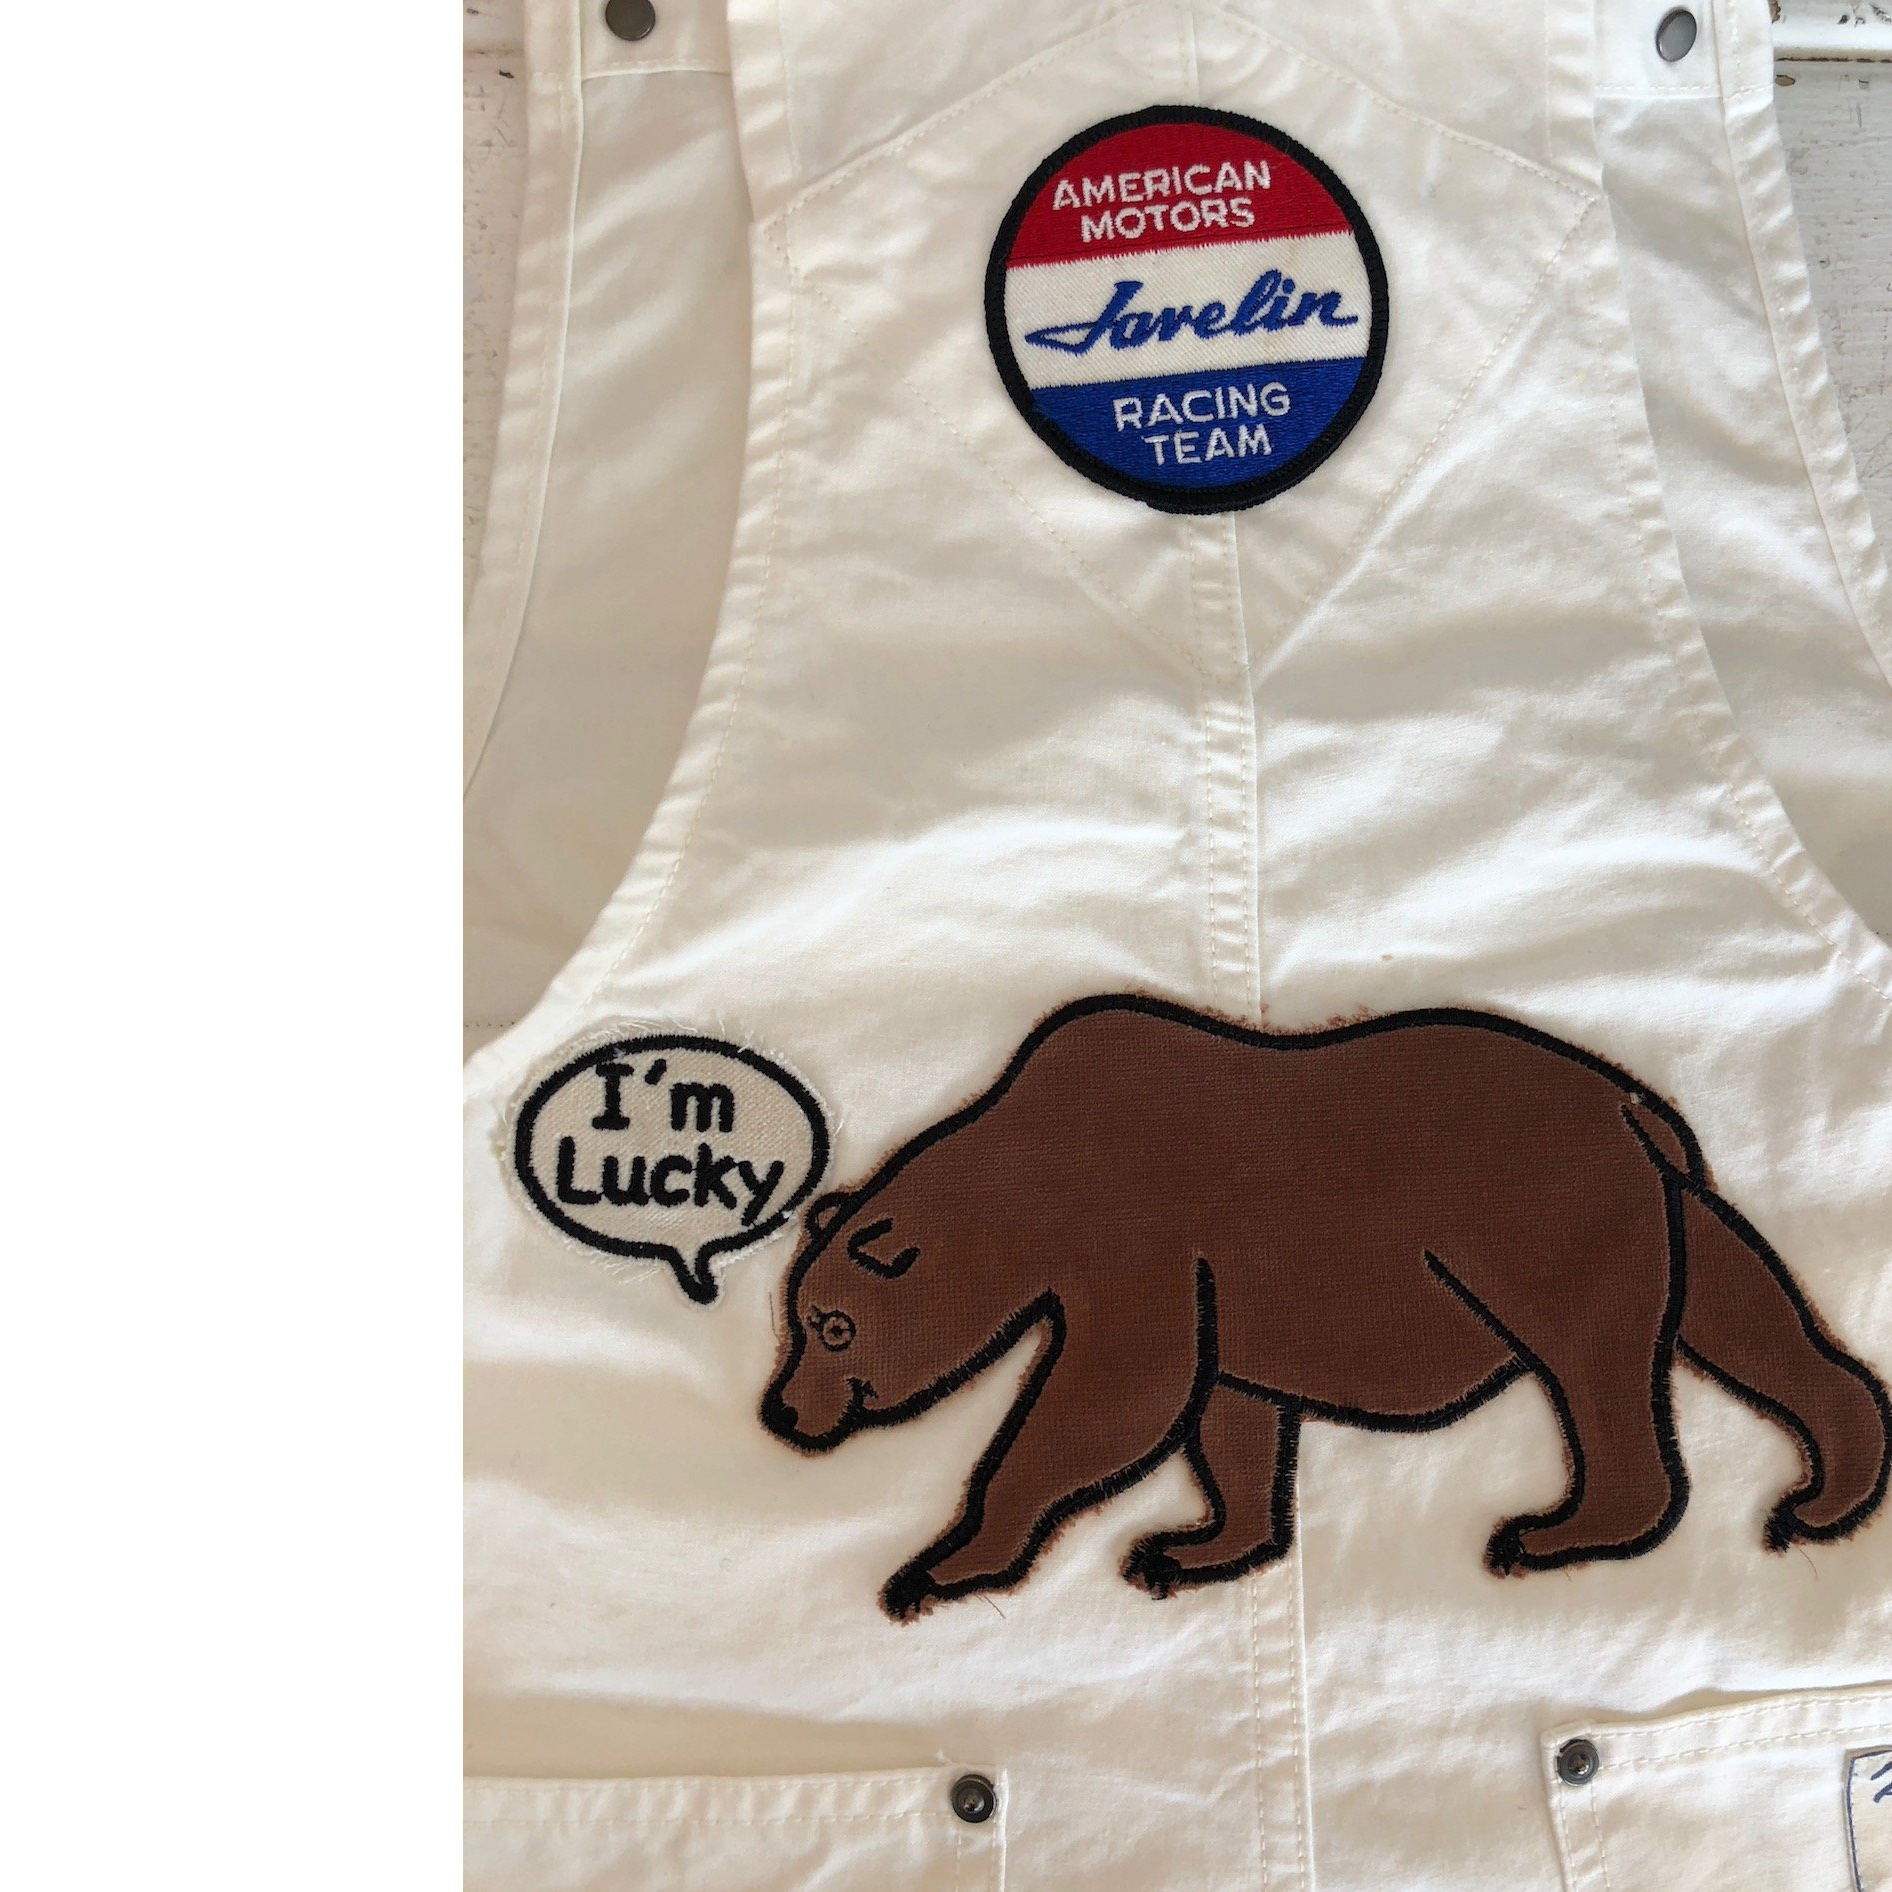 White denim overalls with an American motors racing team patch at the top. And a bear with a text bubble saying I'm Lucky on the bottom.